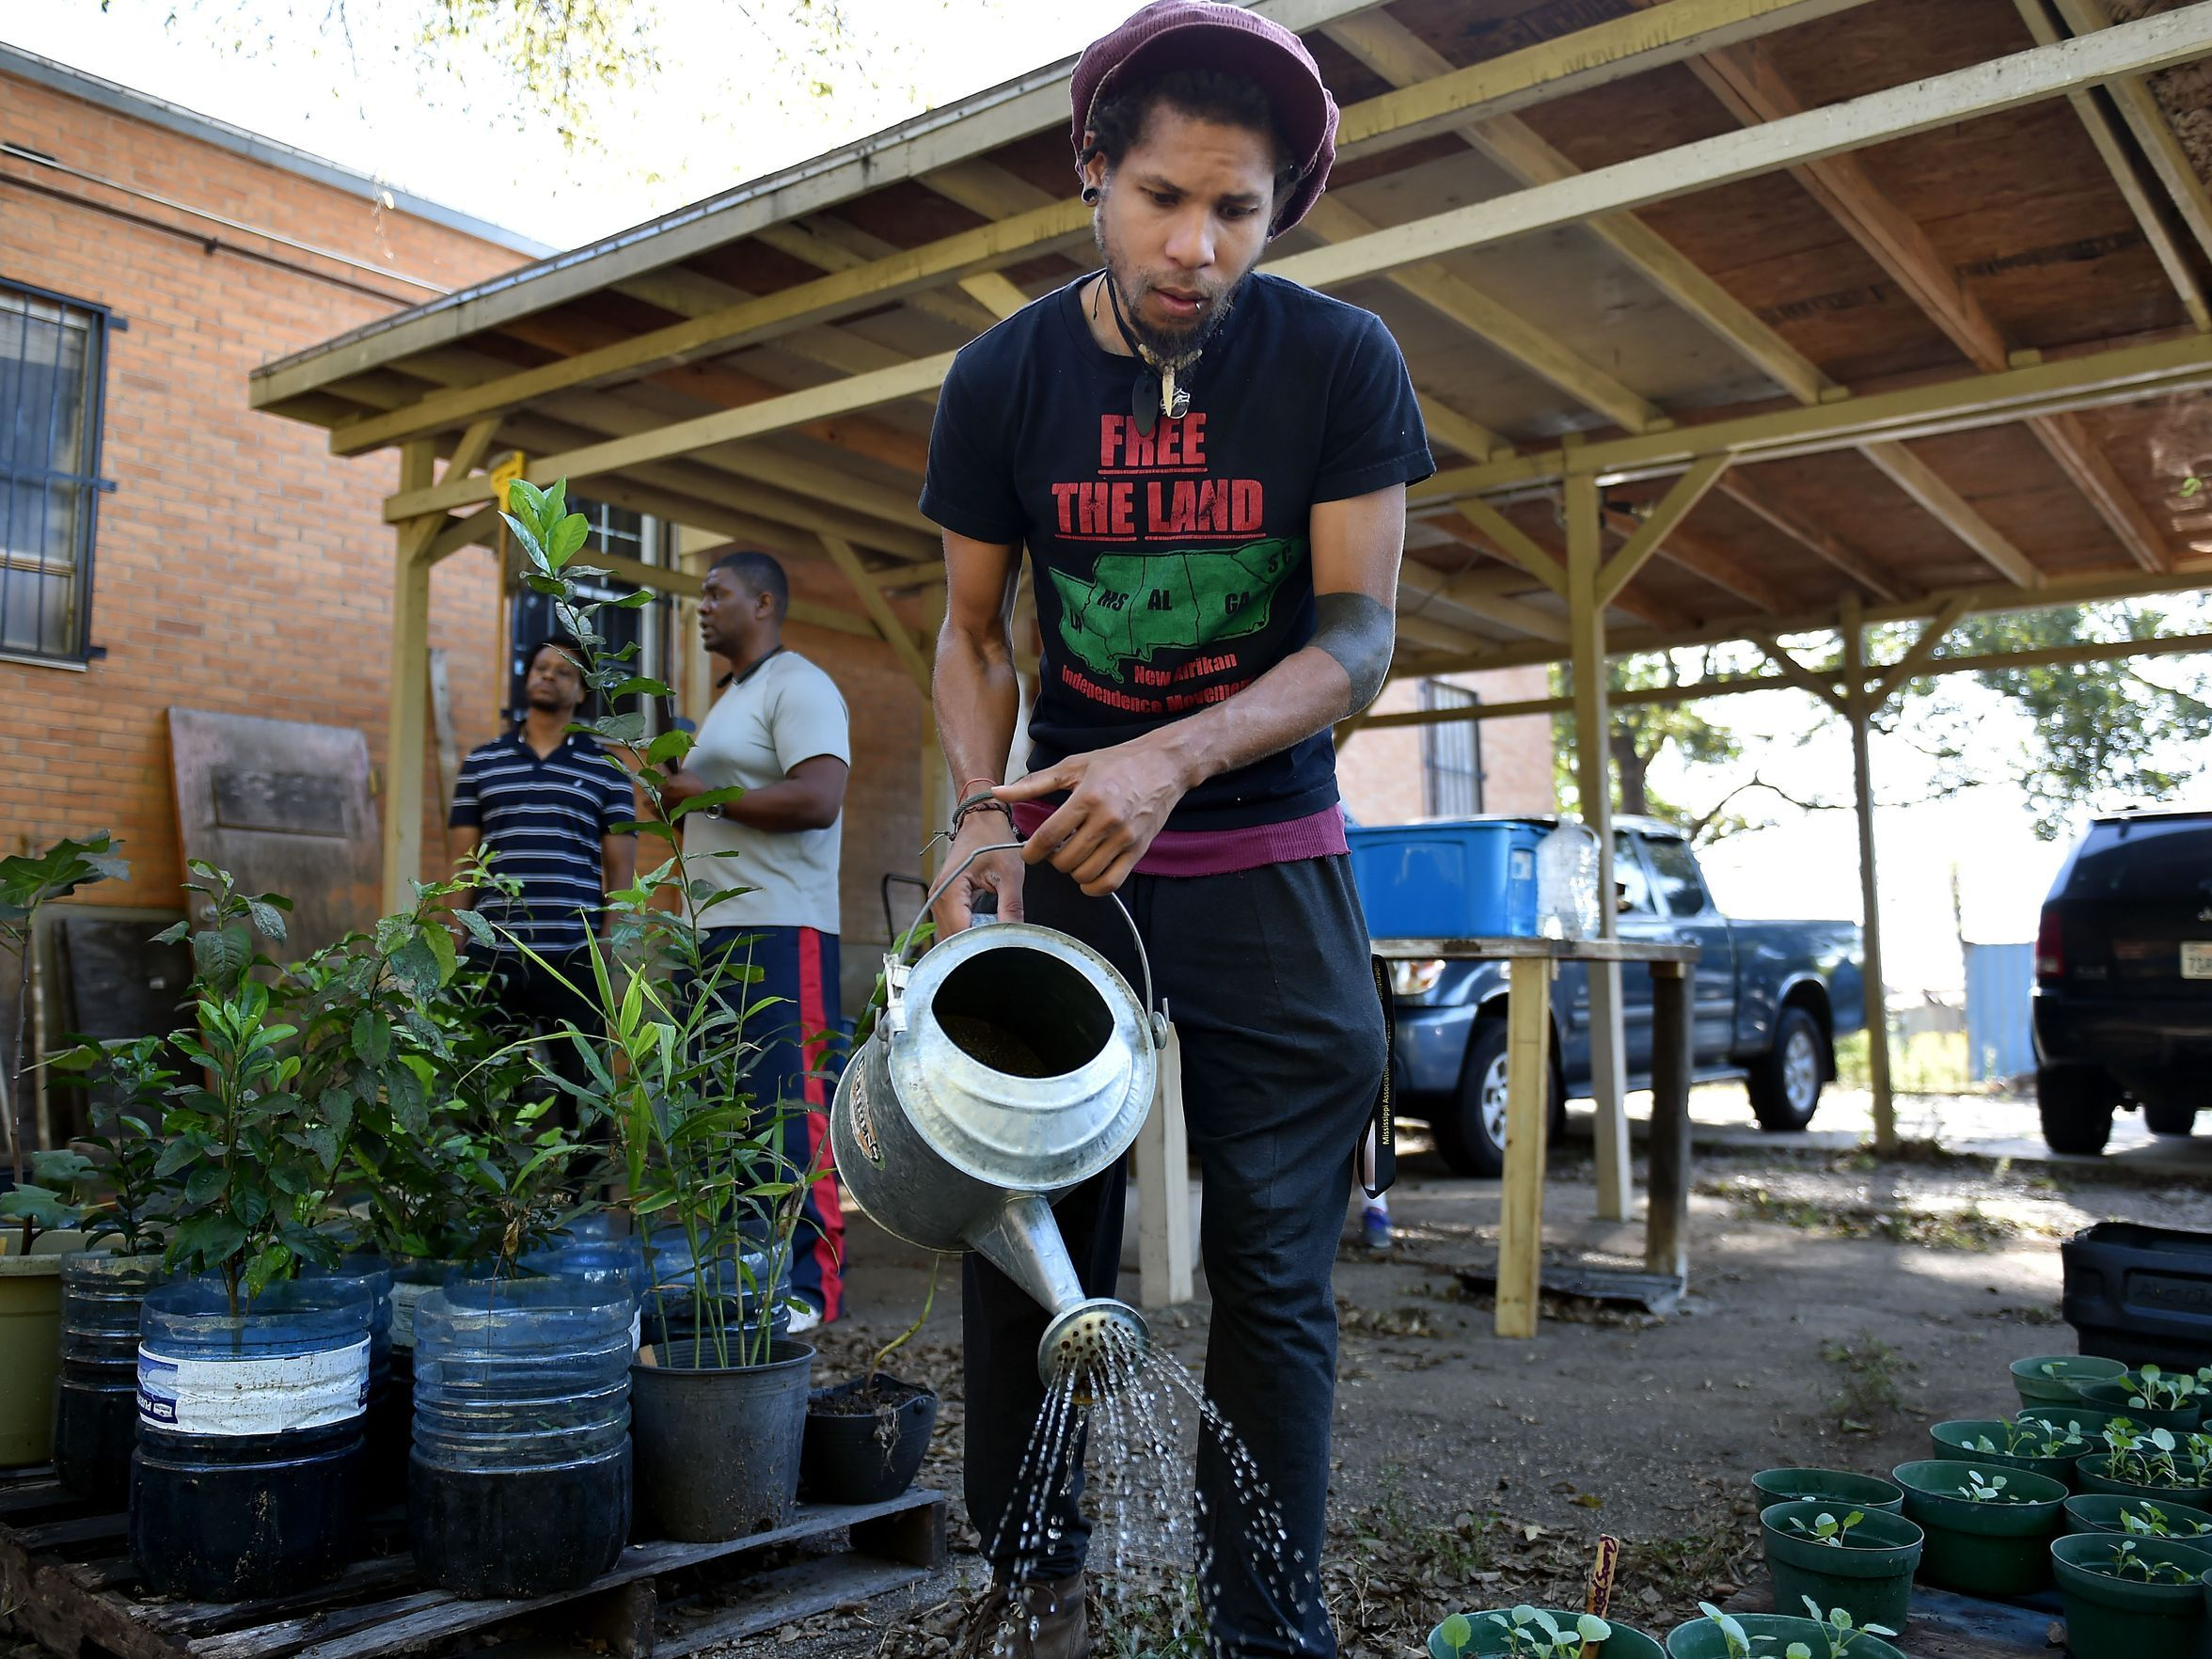 Jackson resident brandon king, who spells his name in all lowercase letters, waters the plants behind Cooperation Jackson on Oct. 4, 2017, in Jackson. (Photo Credit: Justin Sellers/Clarion Ledger)